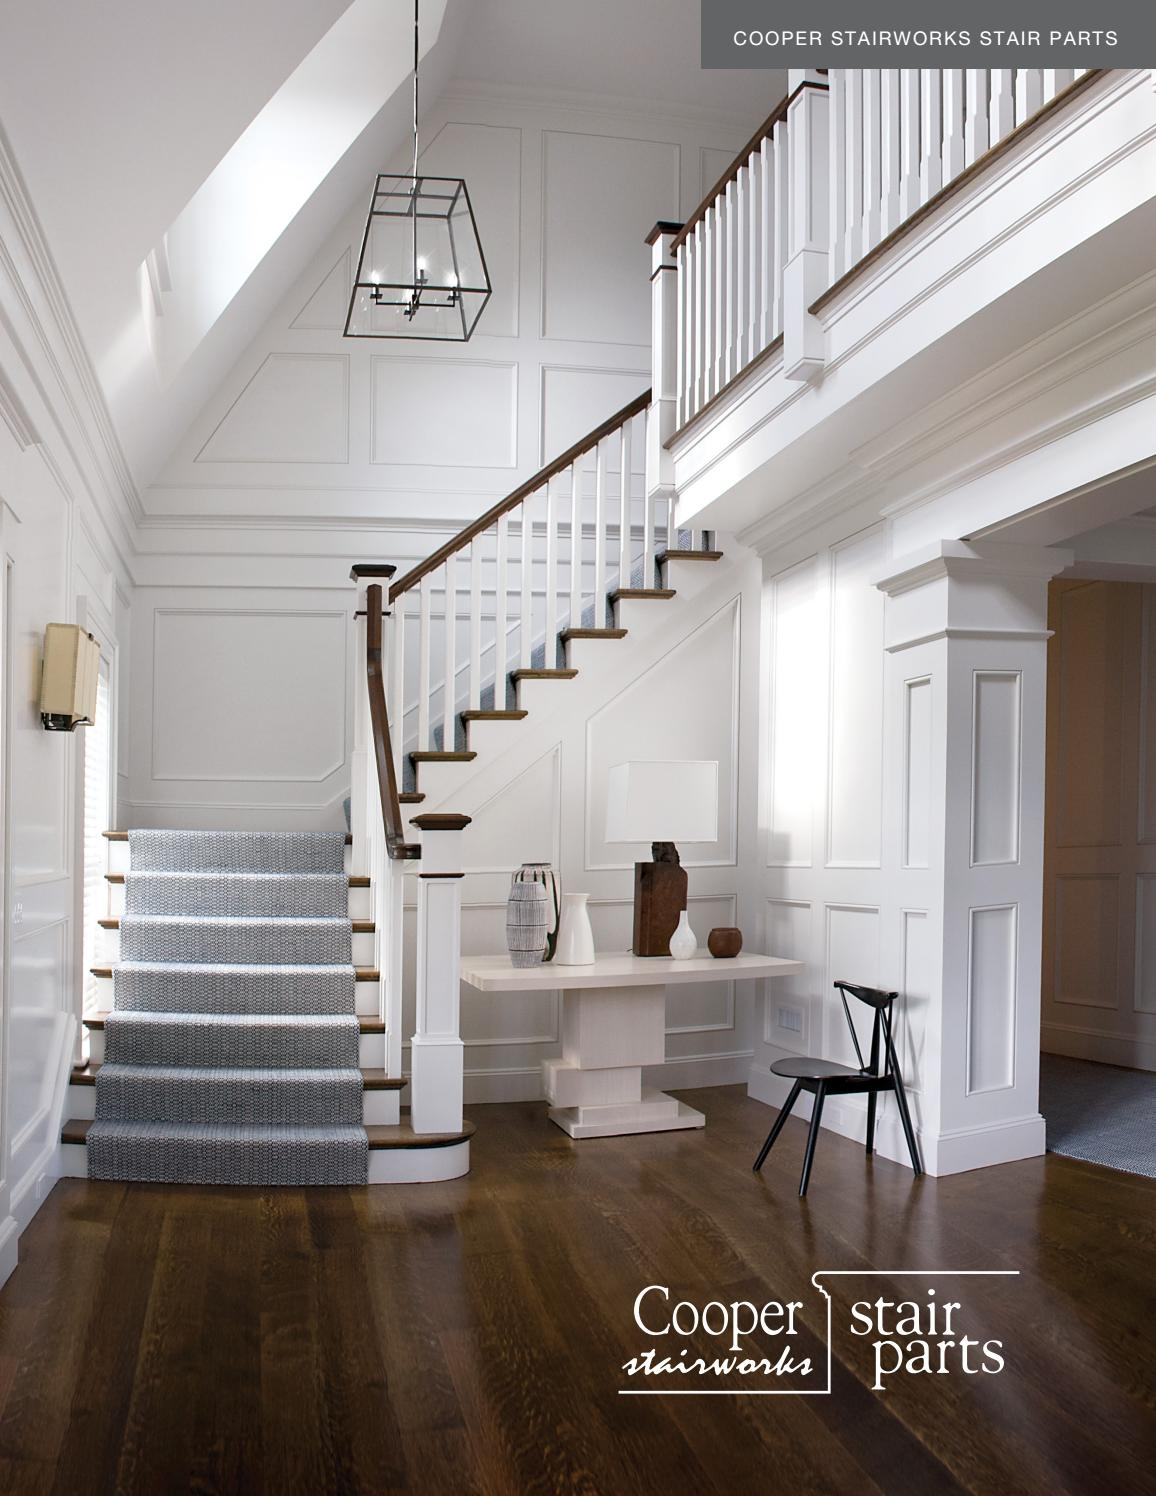 Cooper Stairworks Stairparts Brochure By Clearymillwork Issuu | White Oak Handrail Round | Flooring | Wood Handrail | Foyer | Mopstick | Staircase